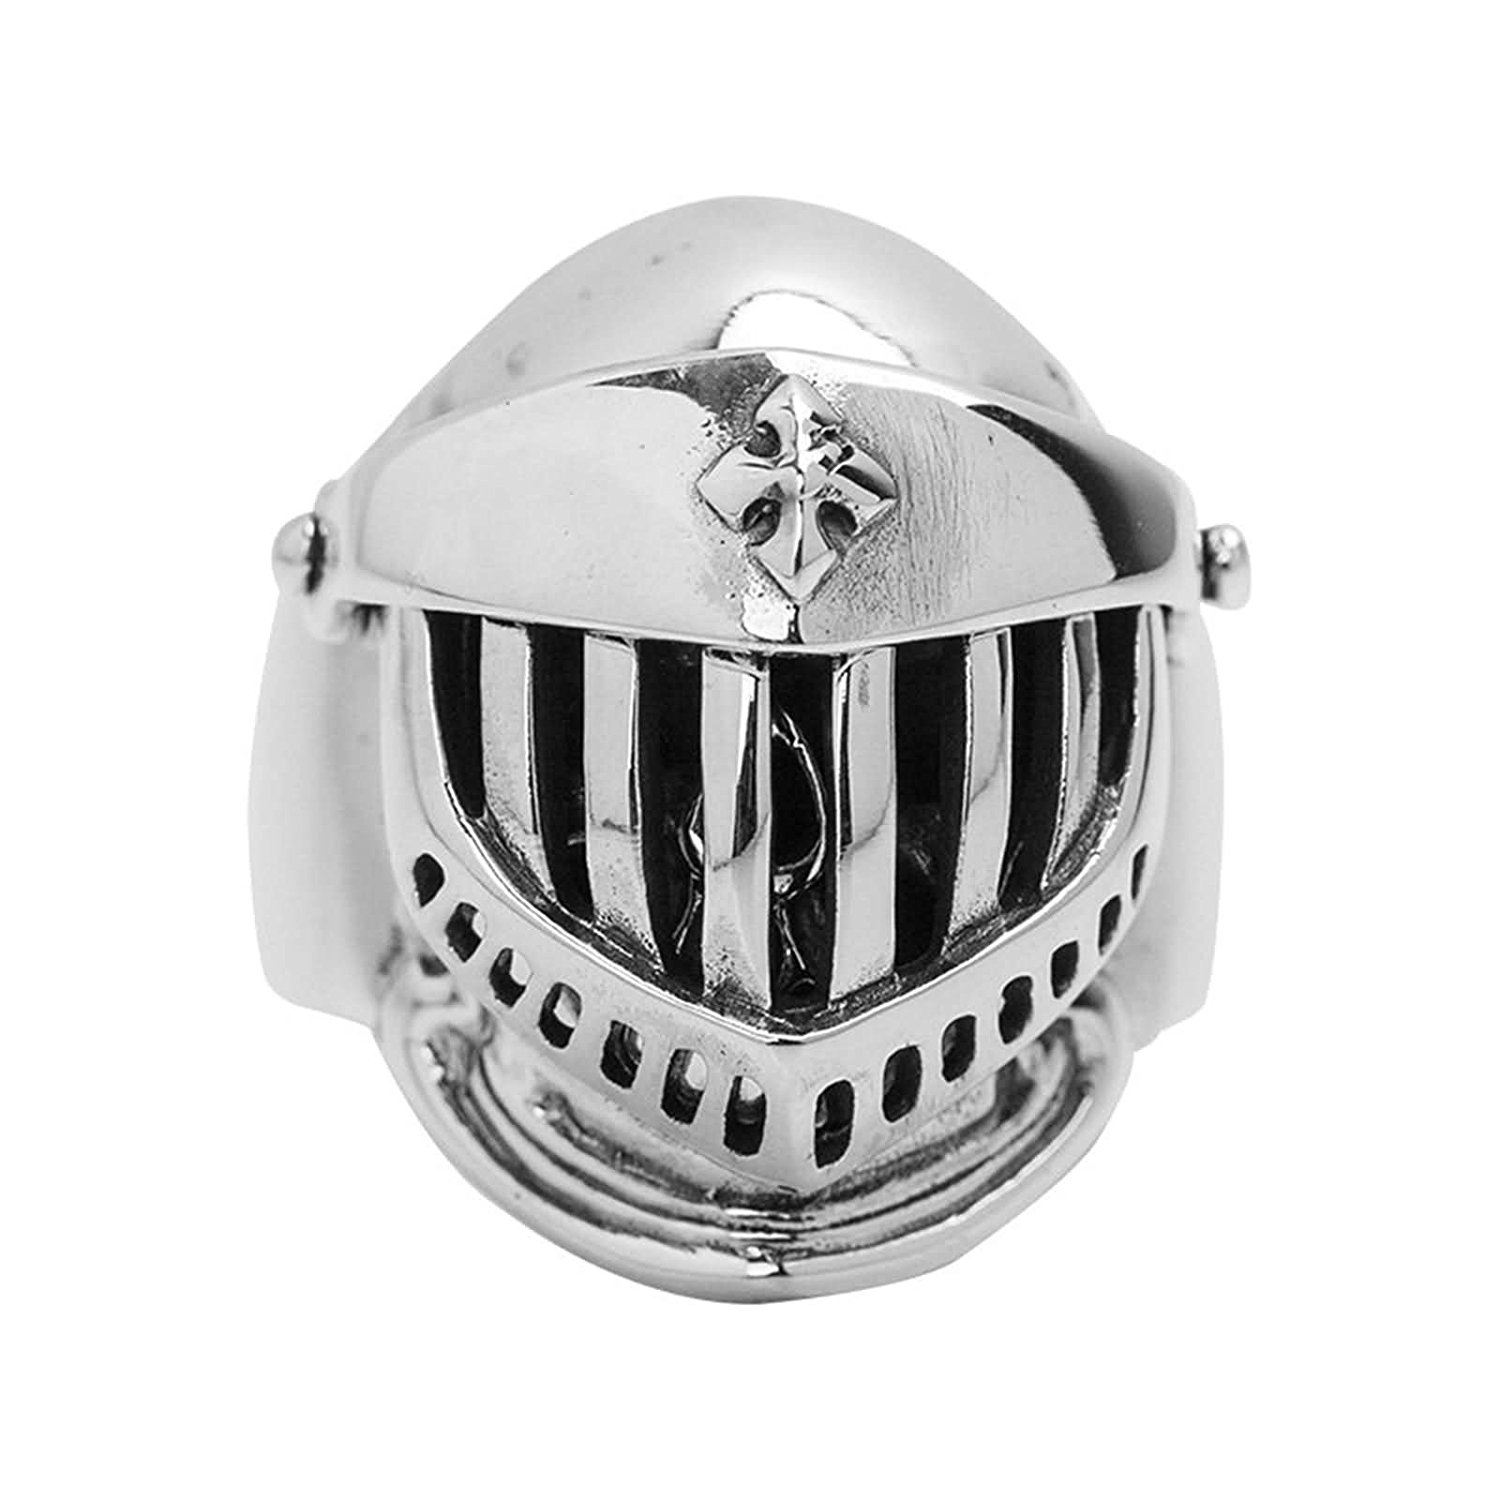 Bishilin Mens Ring Sterling Silver Eagle Anniversary Partner Ring Silver Size 13